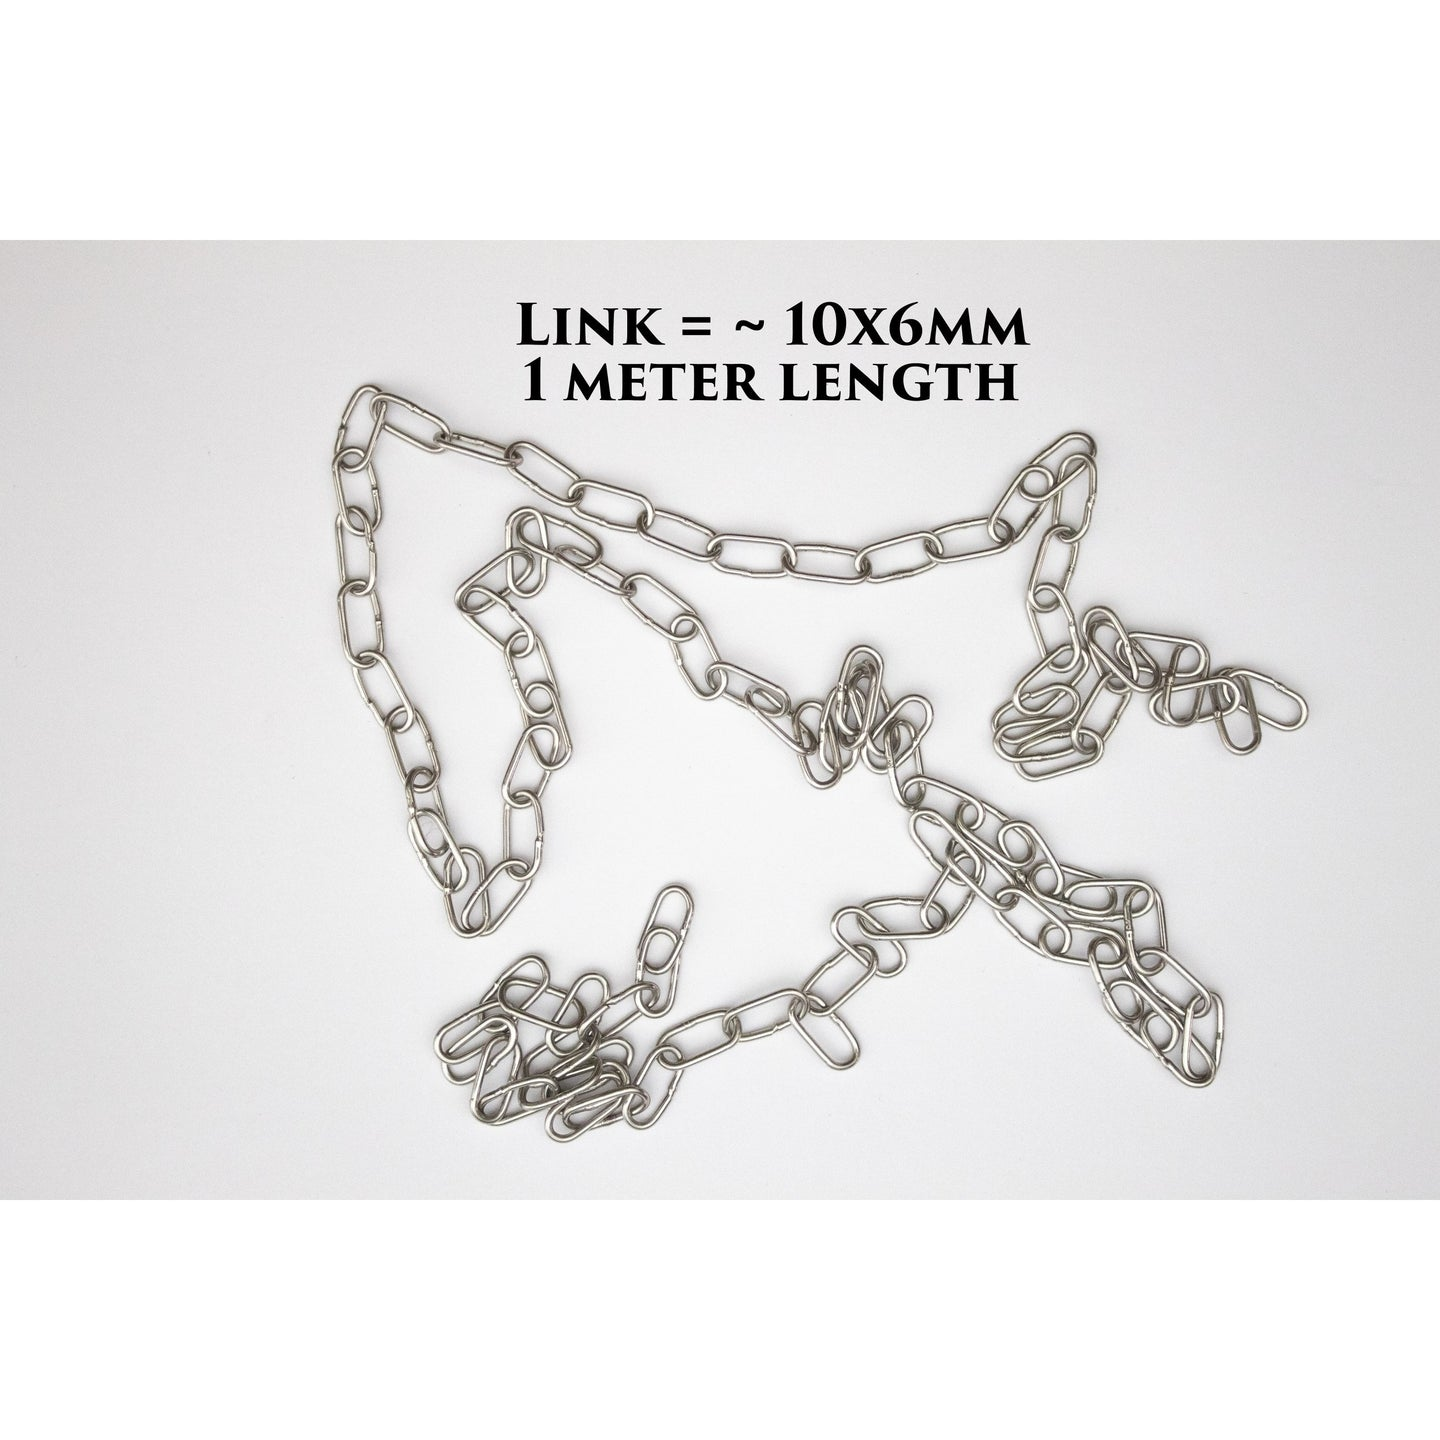 Chain Links (10x6mm) 1 Meter